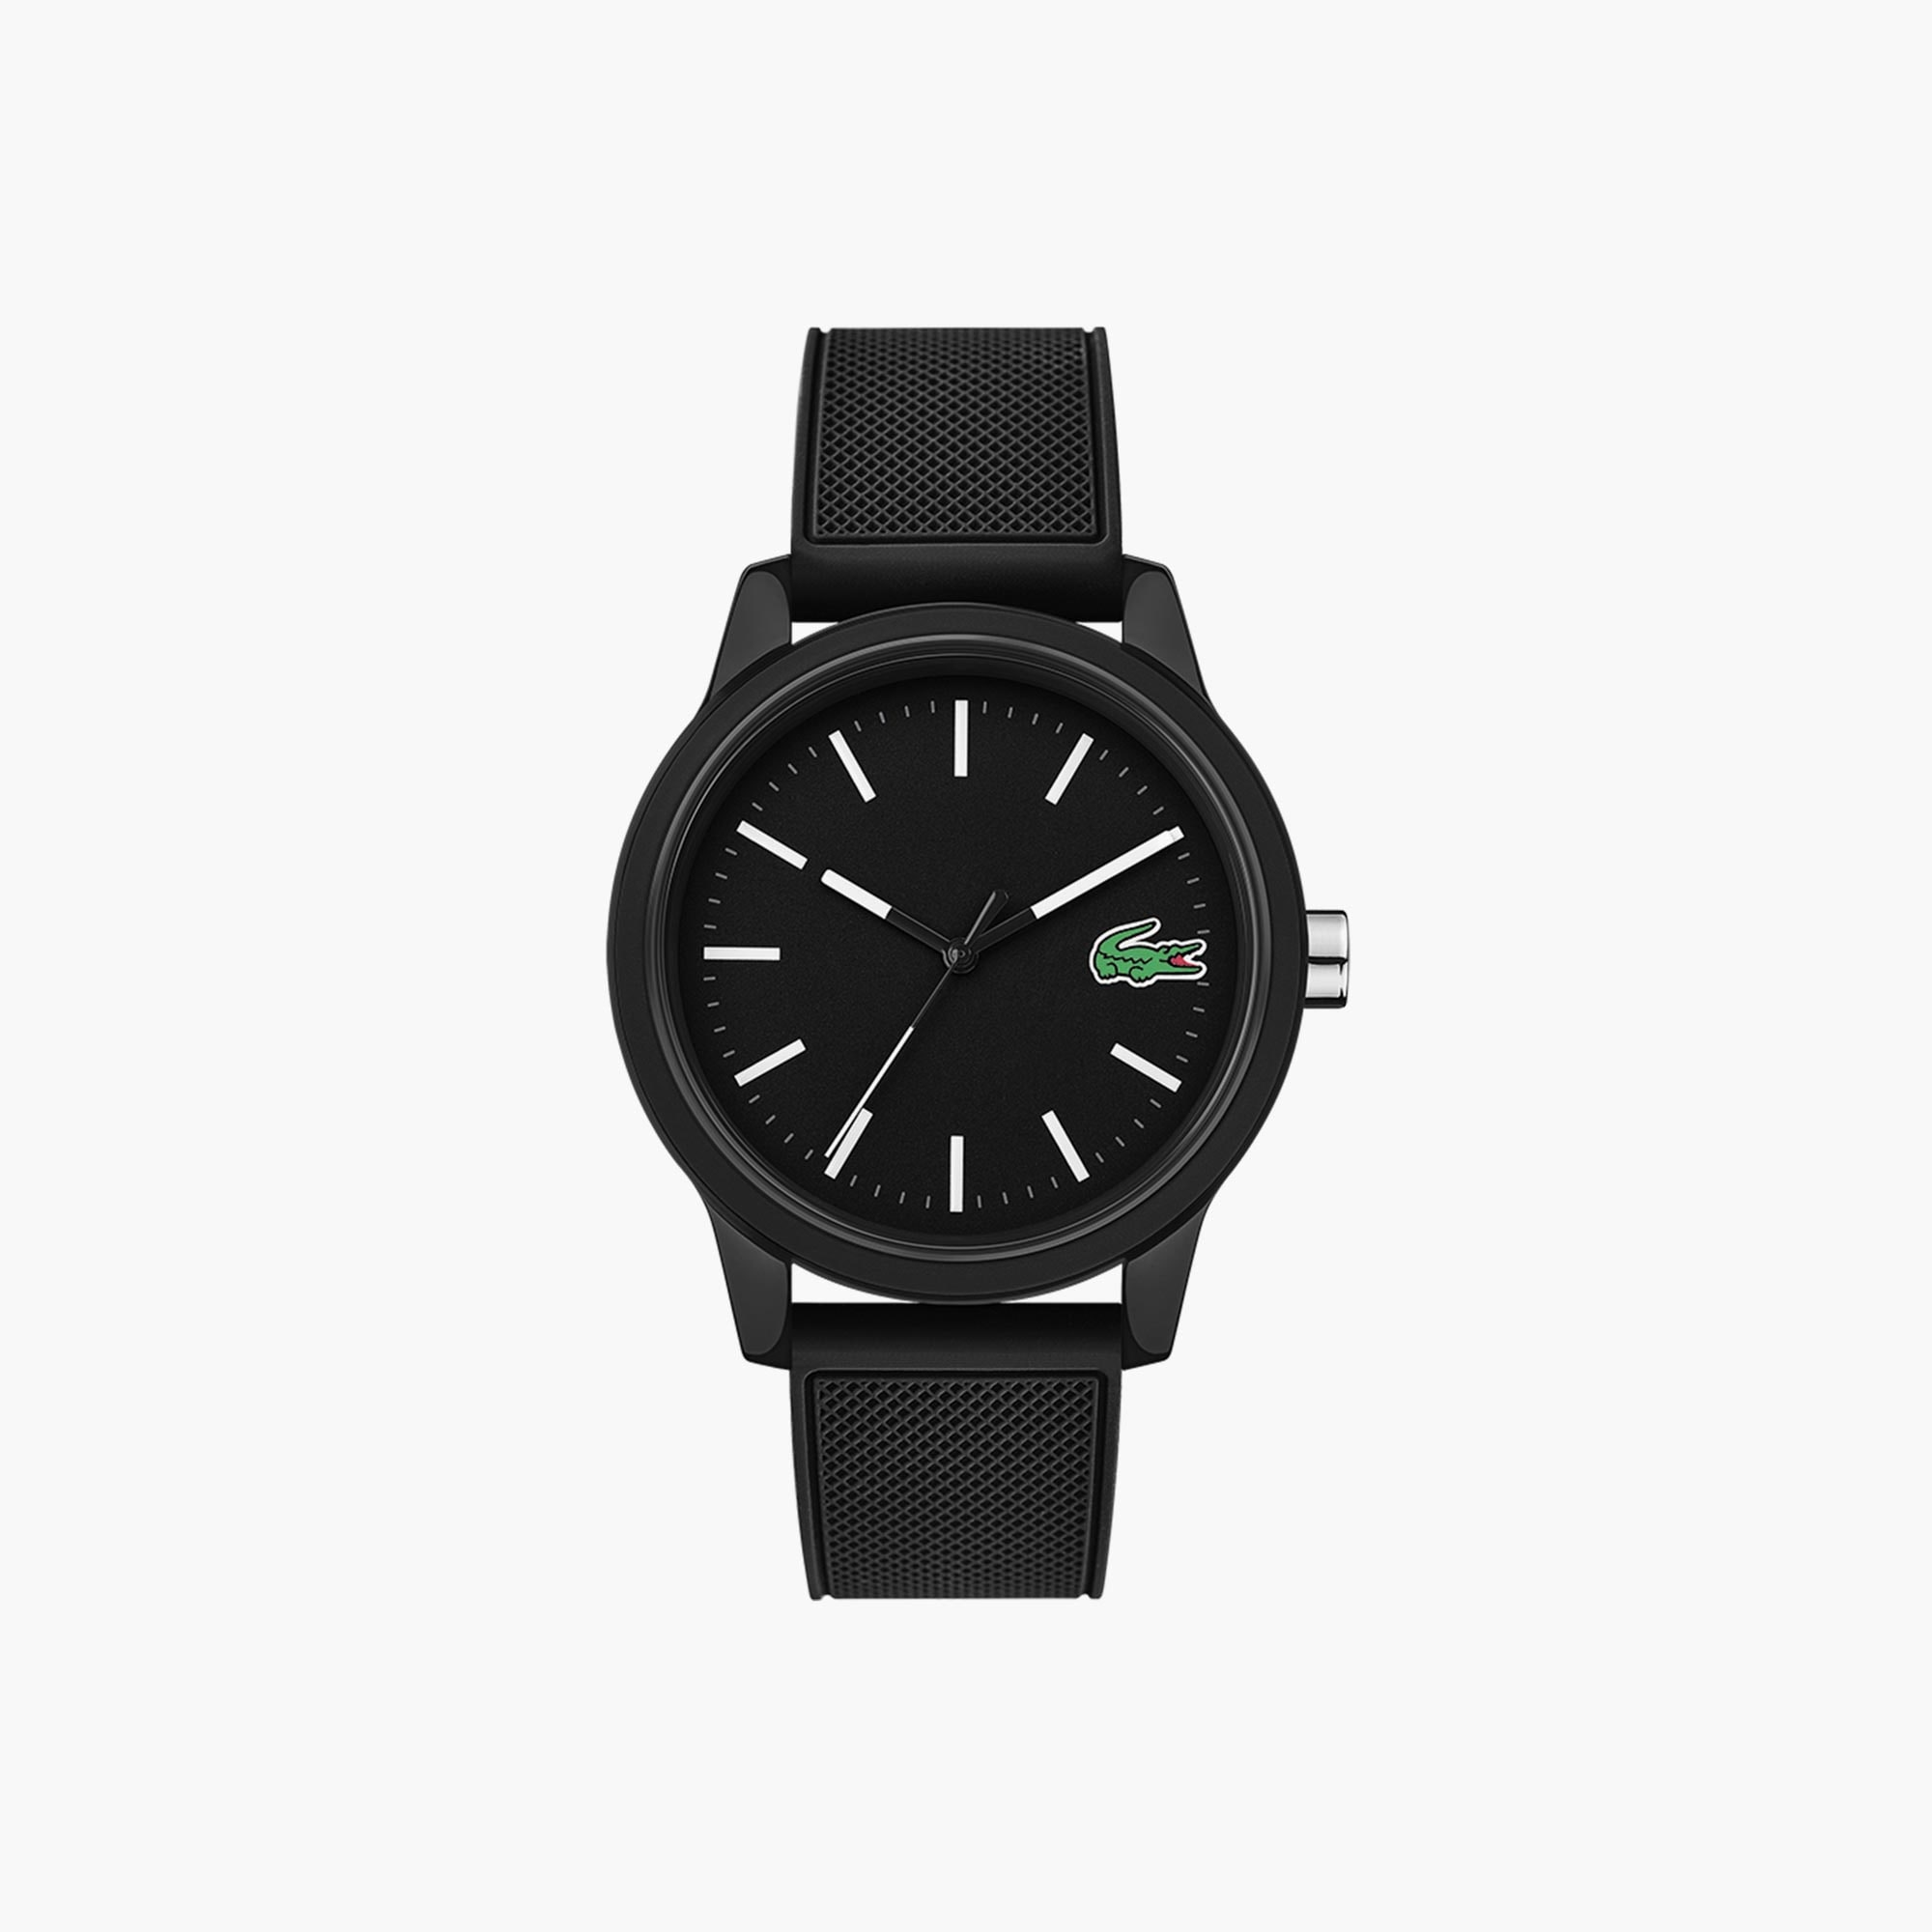 09ceea38afe Men s Lacoste 12.12 Watch with Black Silicone Strap